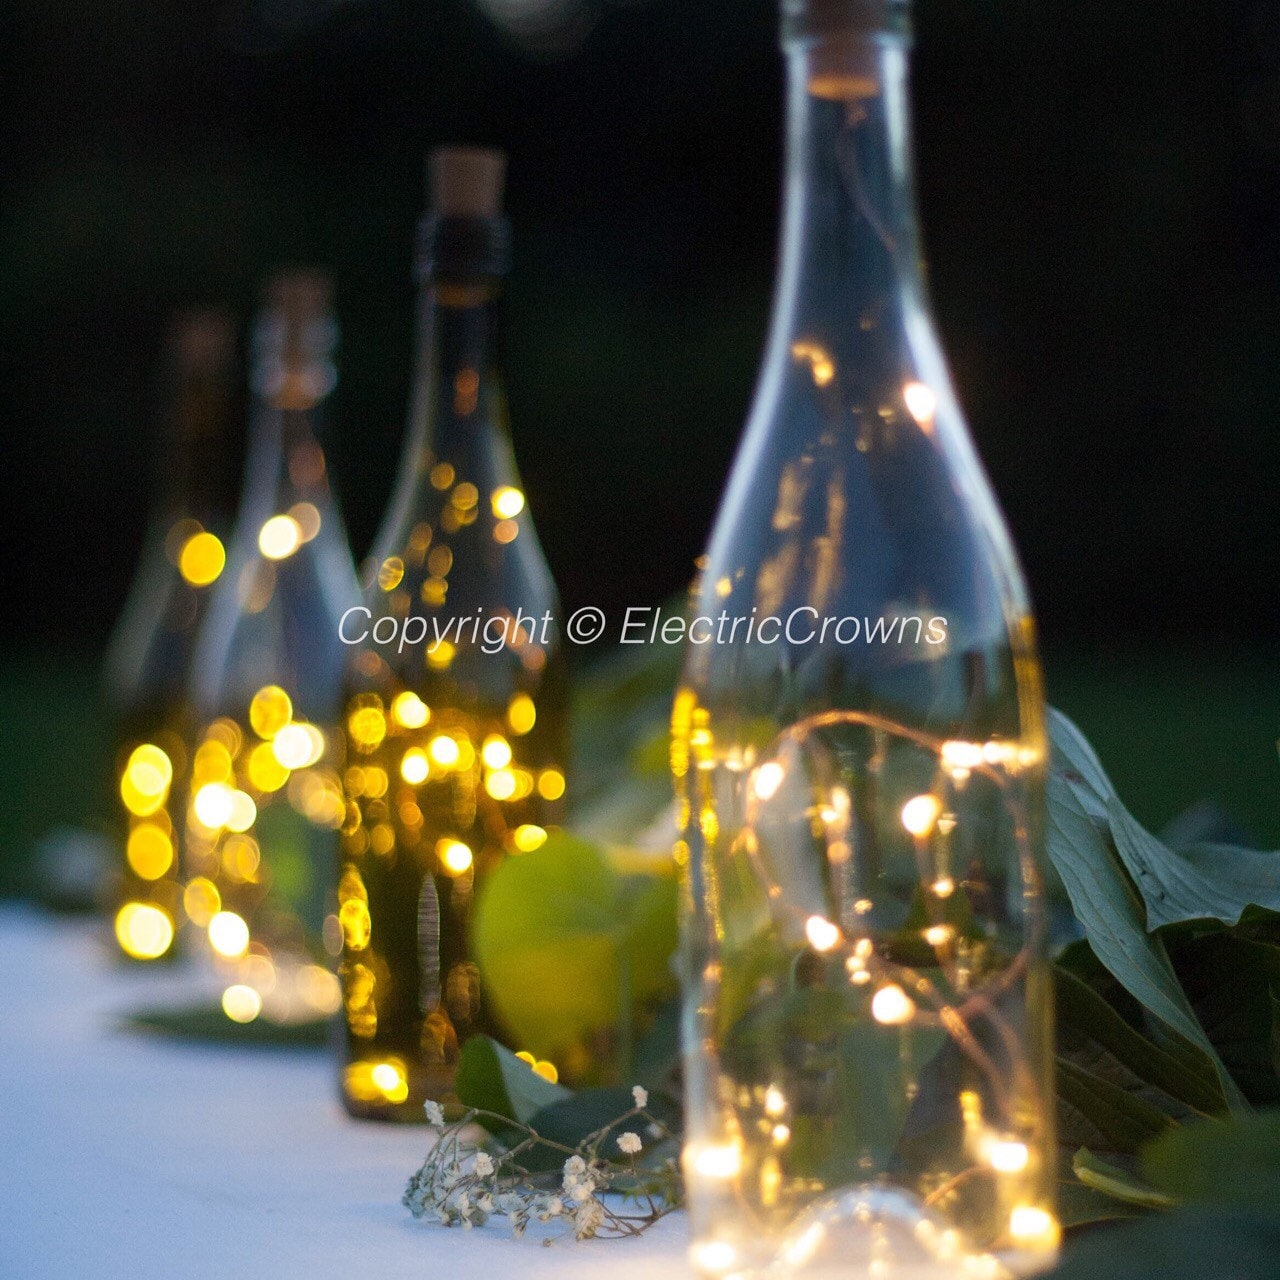 Diy Wedding Lantern Wedding Centerpiece Wine Bottle Decor Centerpiece Wine Bottle Centerpiece